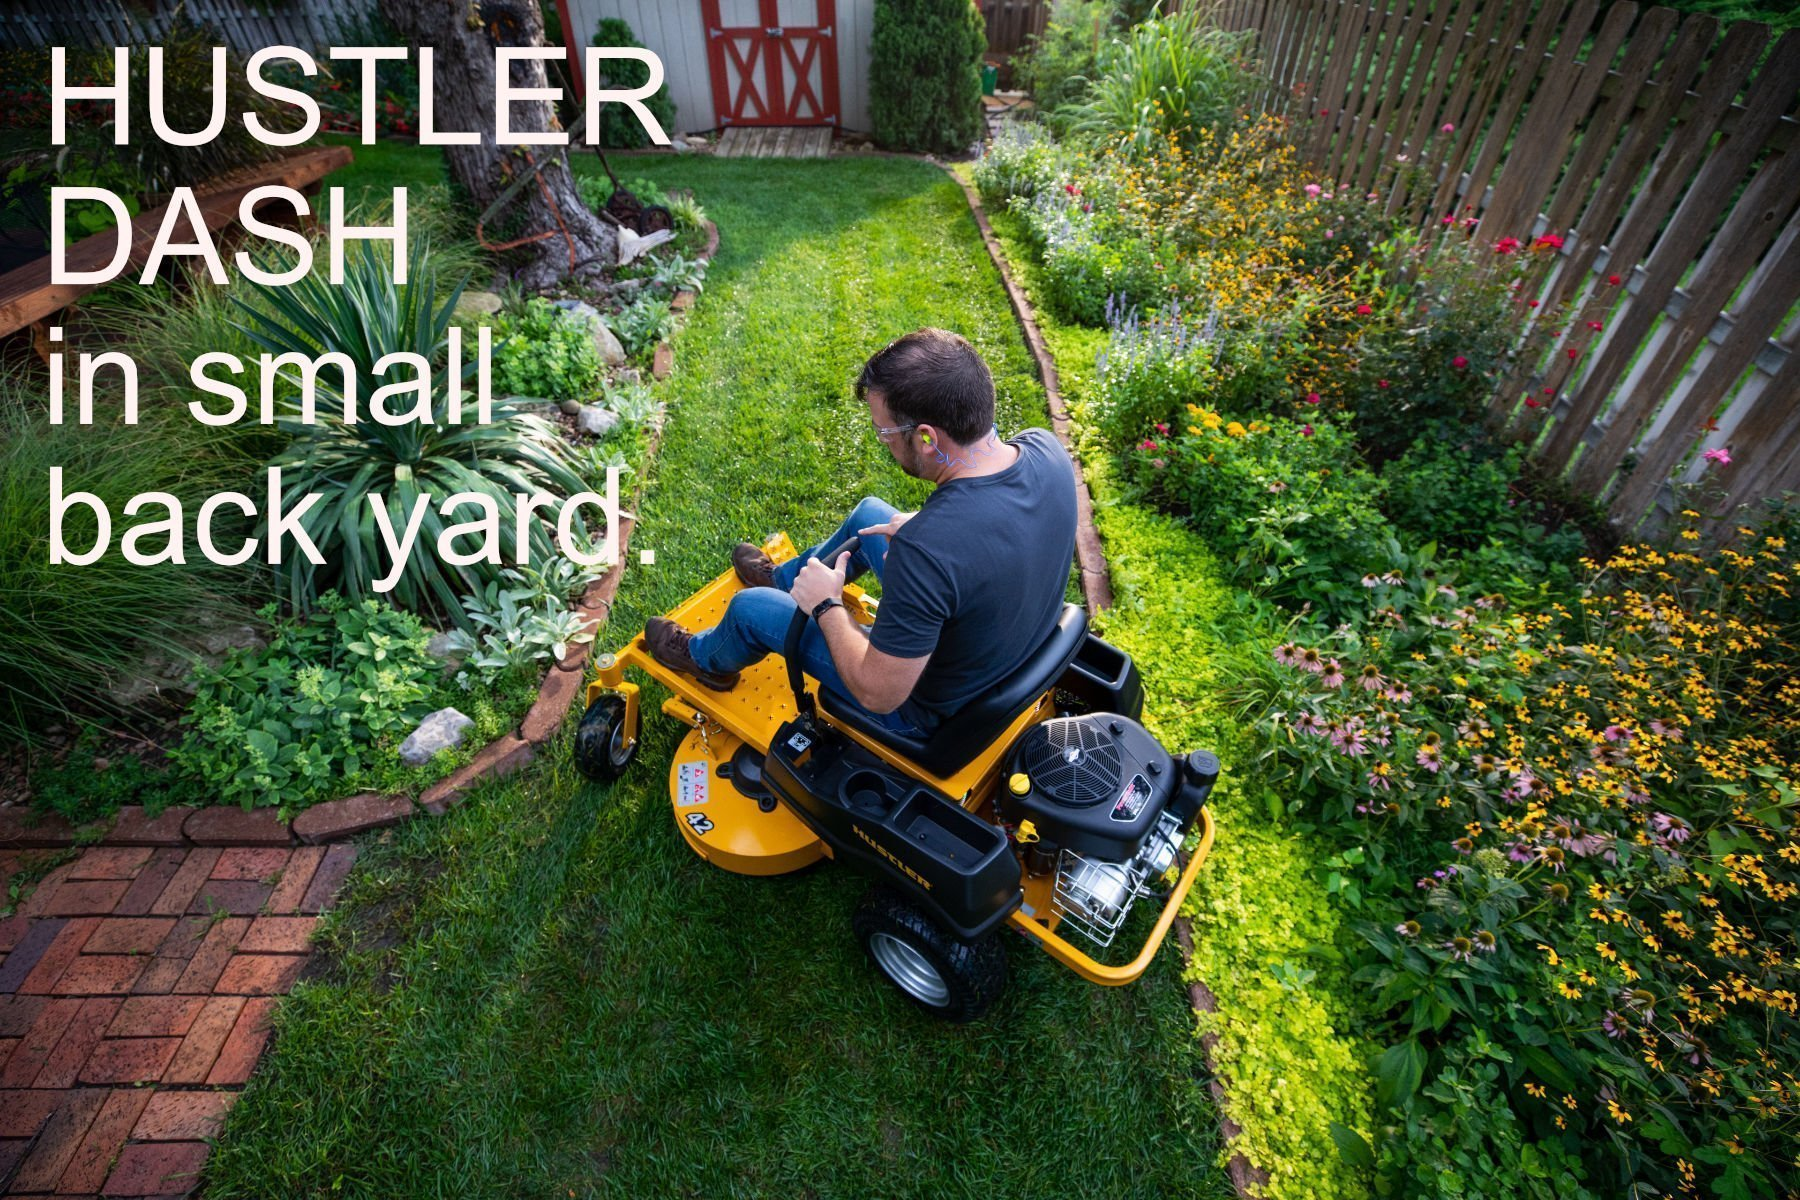 Hustler Dash - Small Back Yard